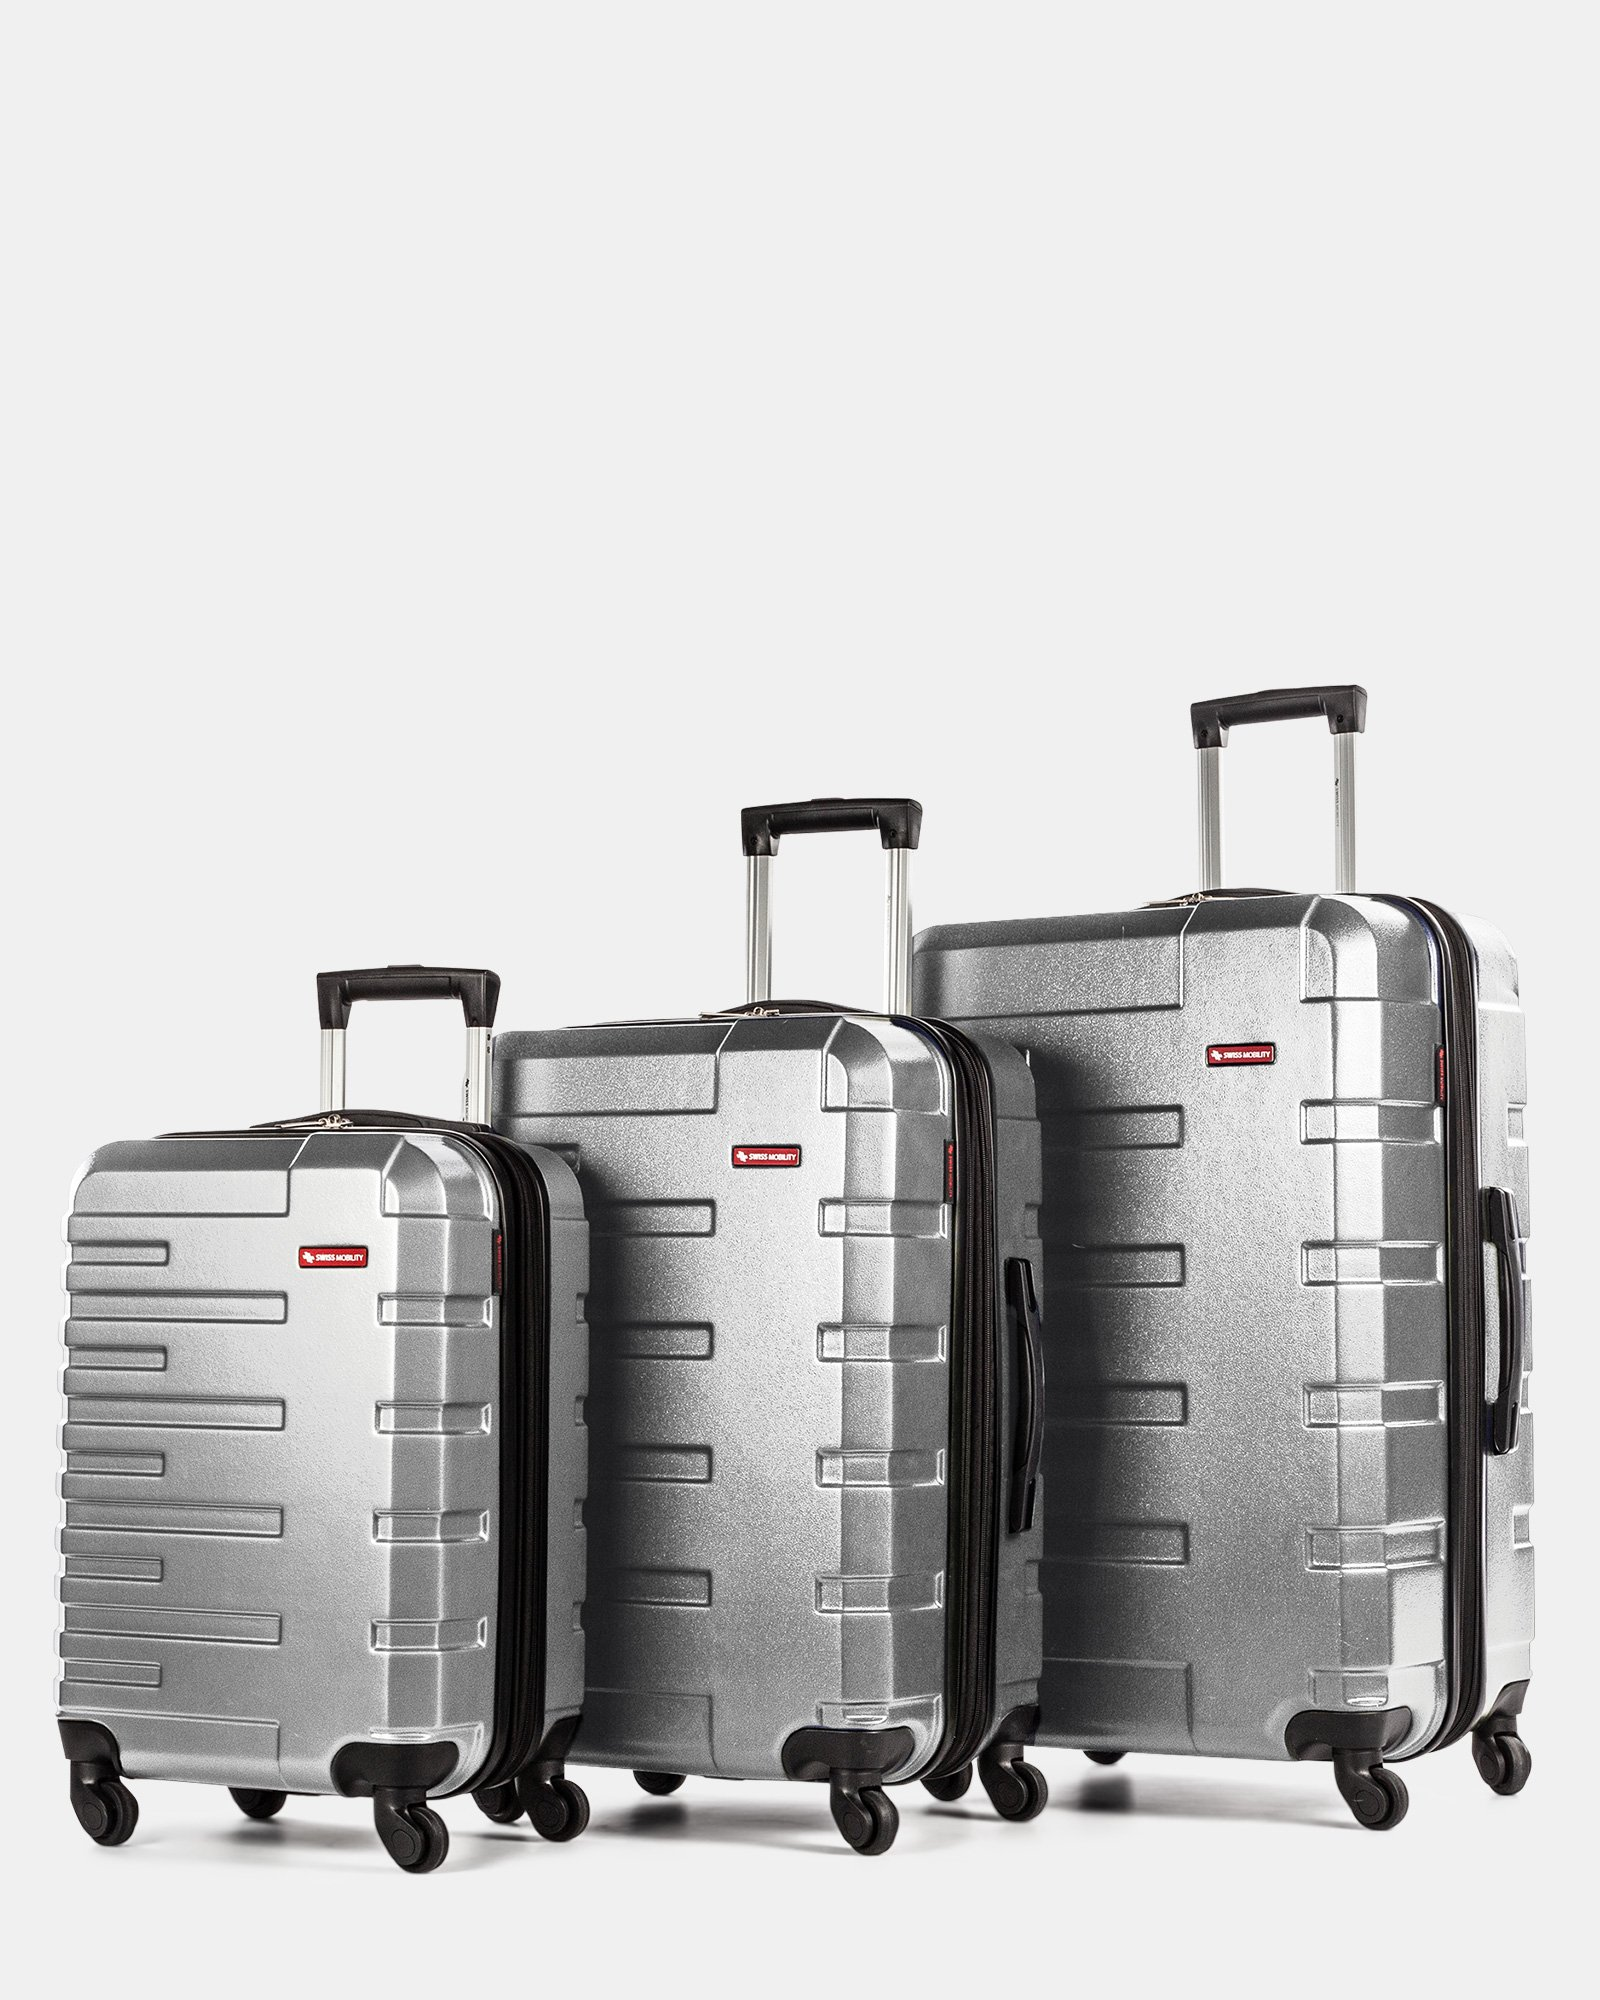 Things to Consider When Buying a Good Suite Case